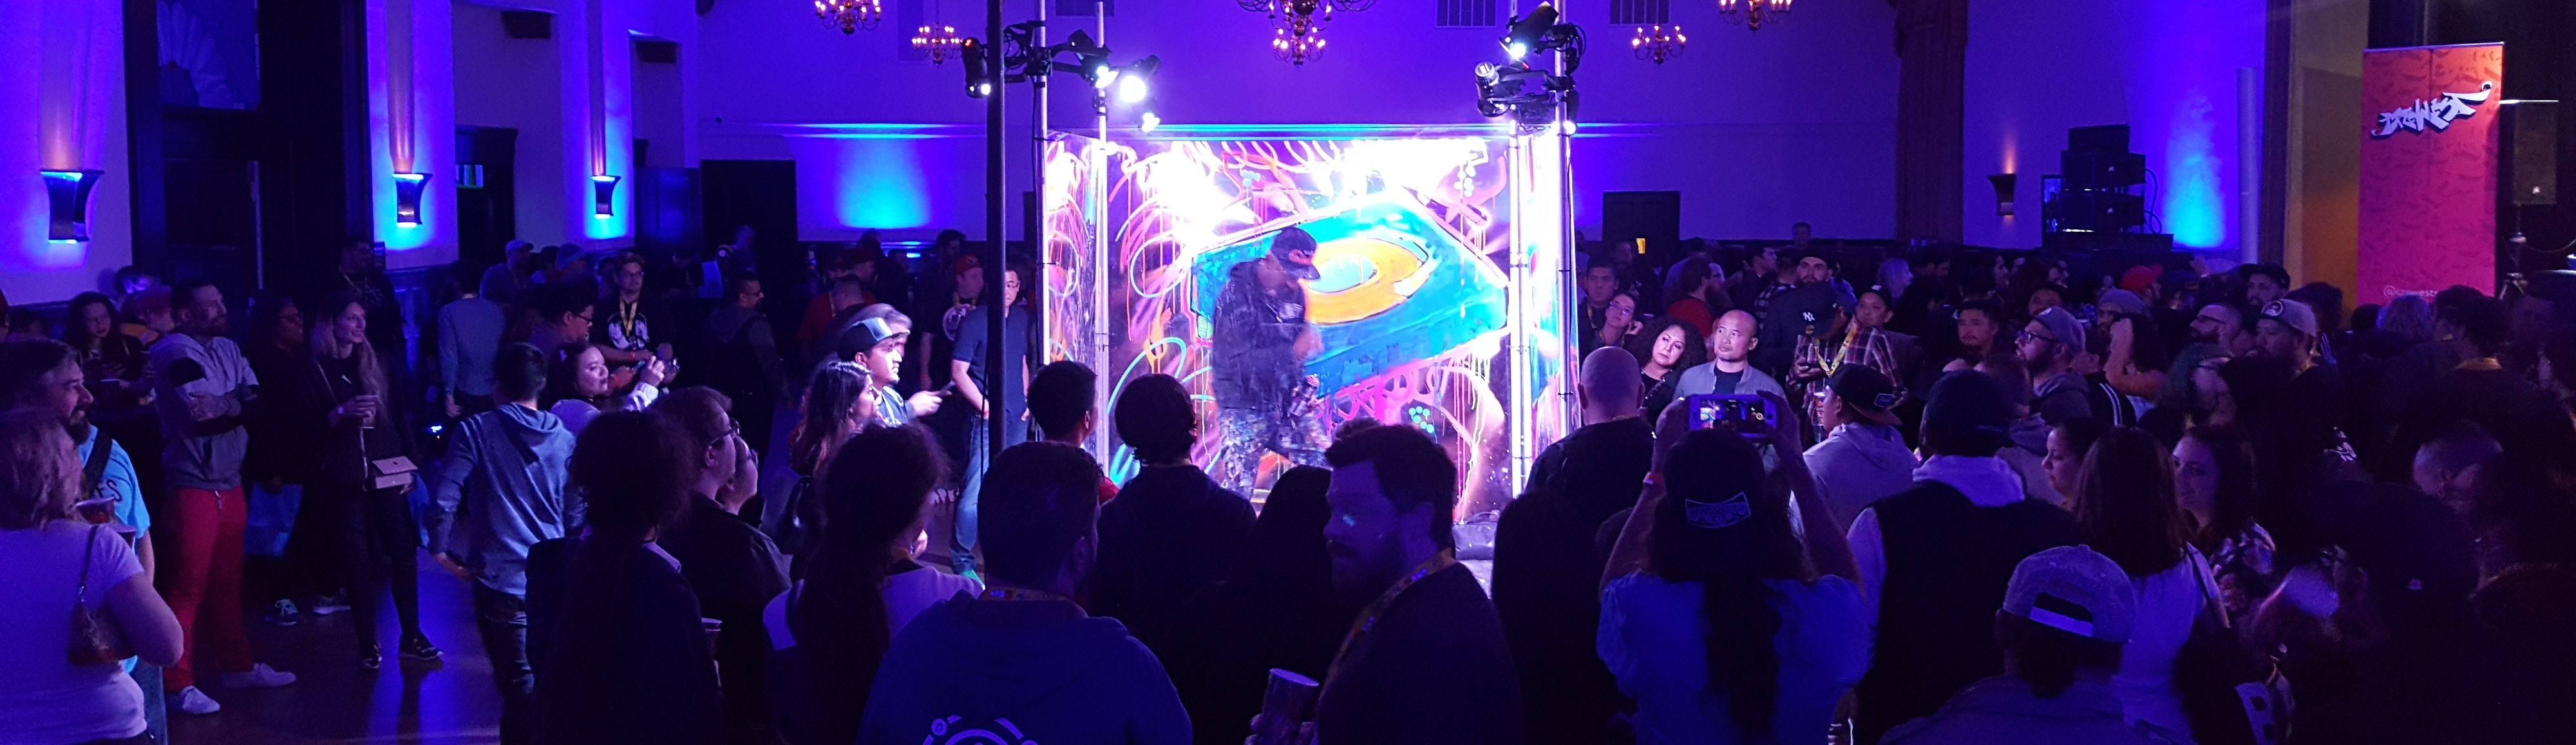 los Angeles experiential event